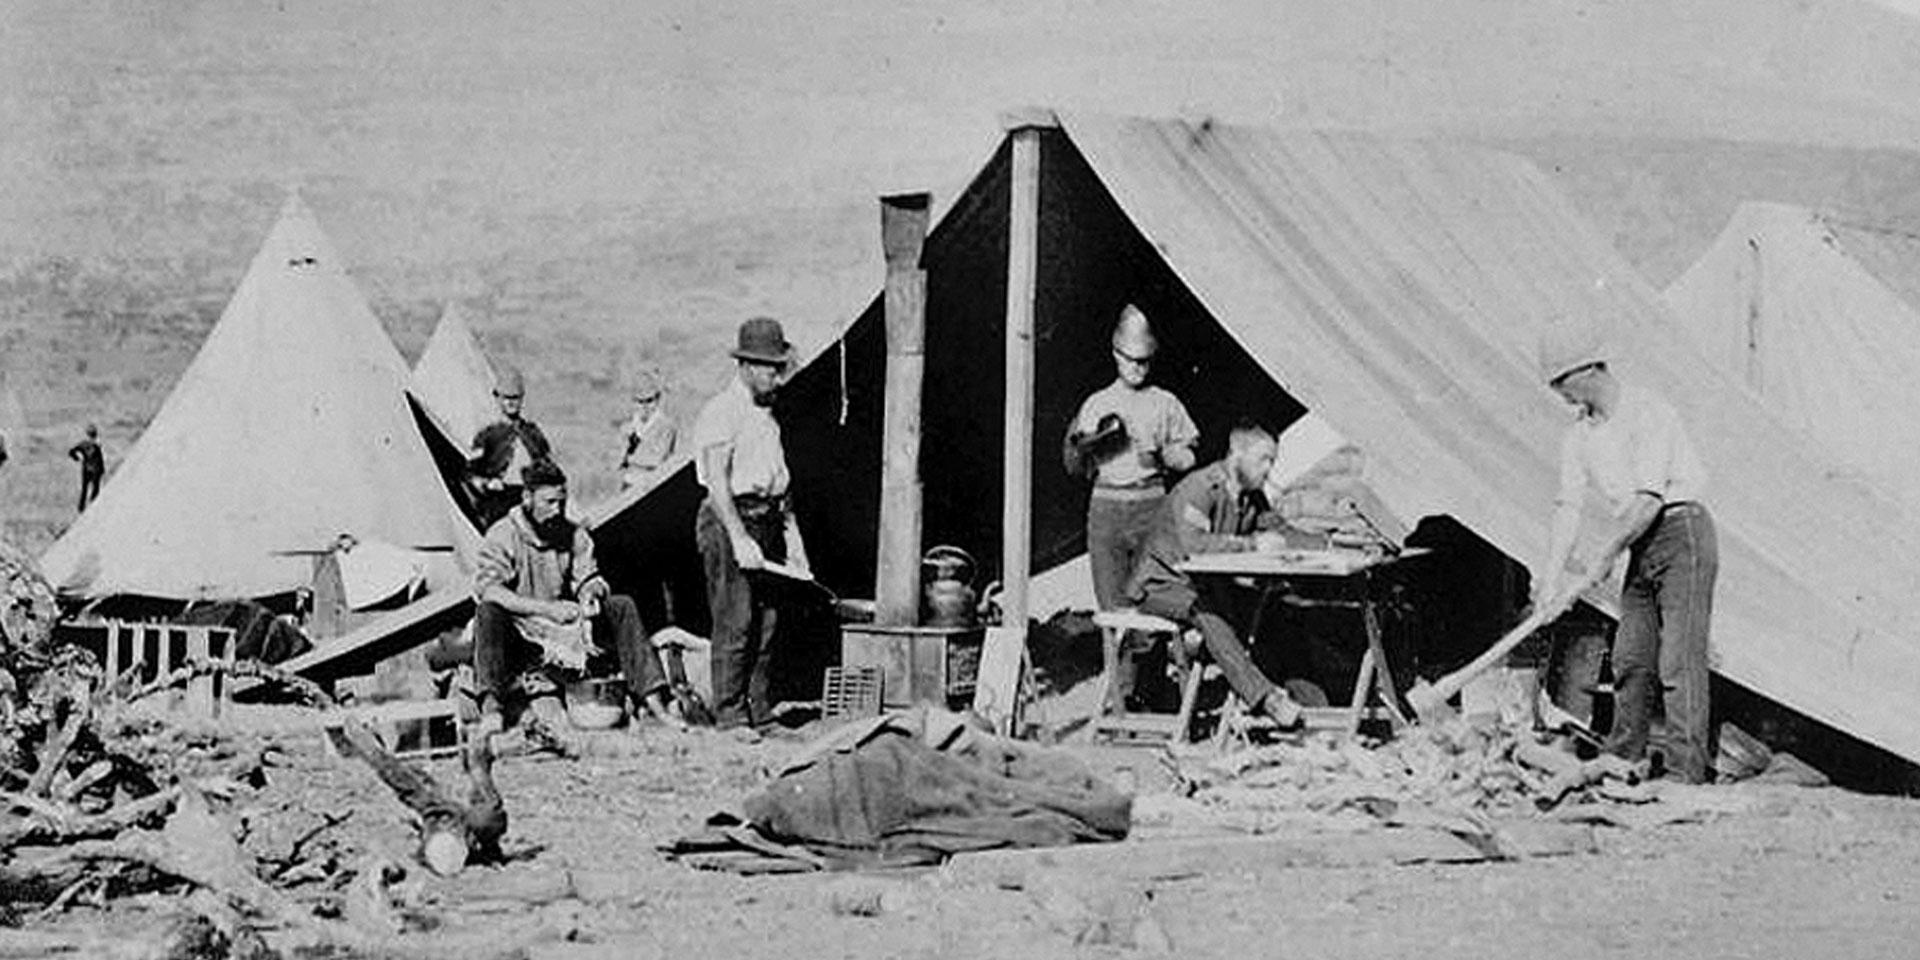 Mess servants and field kitchen of the 80th Regiment of Foot (Staffordshire Volunteers), c1879